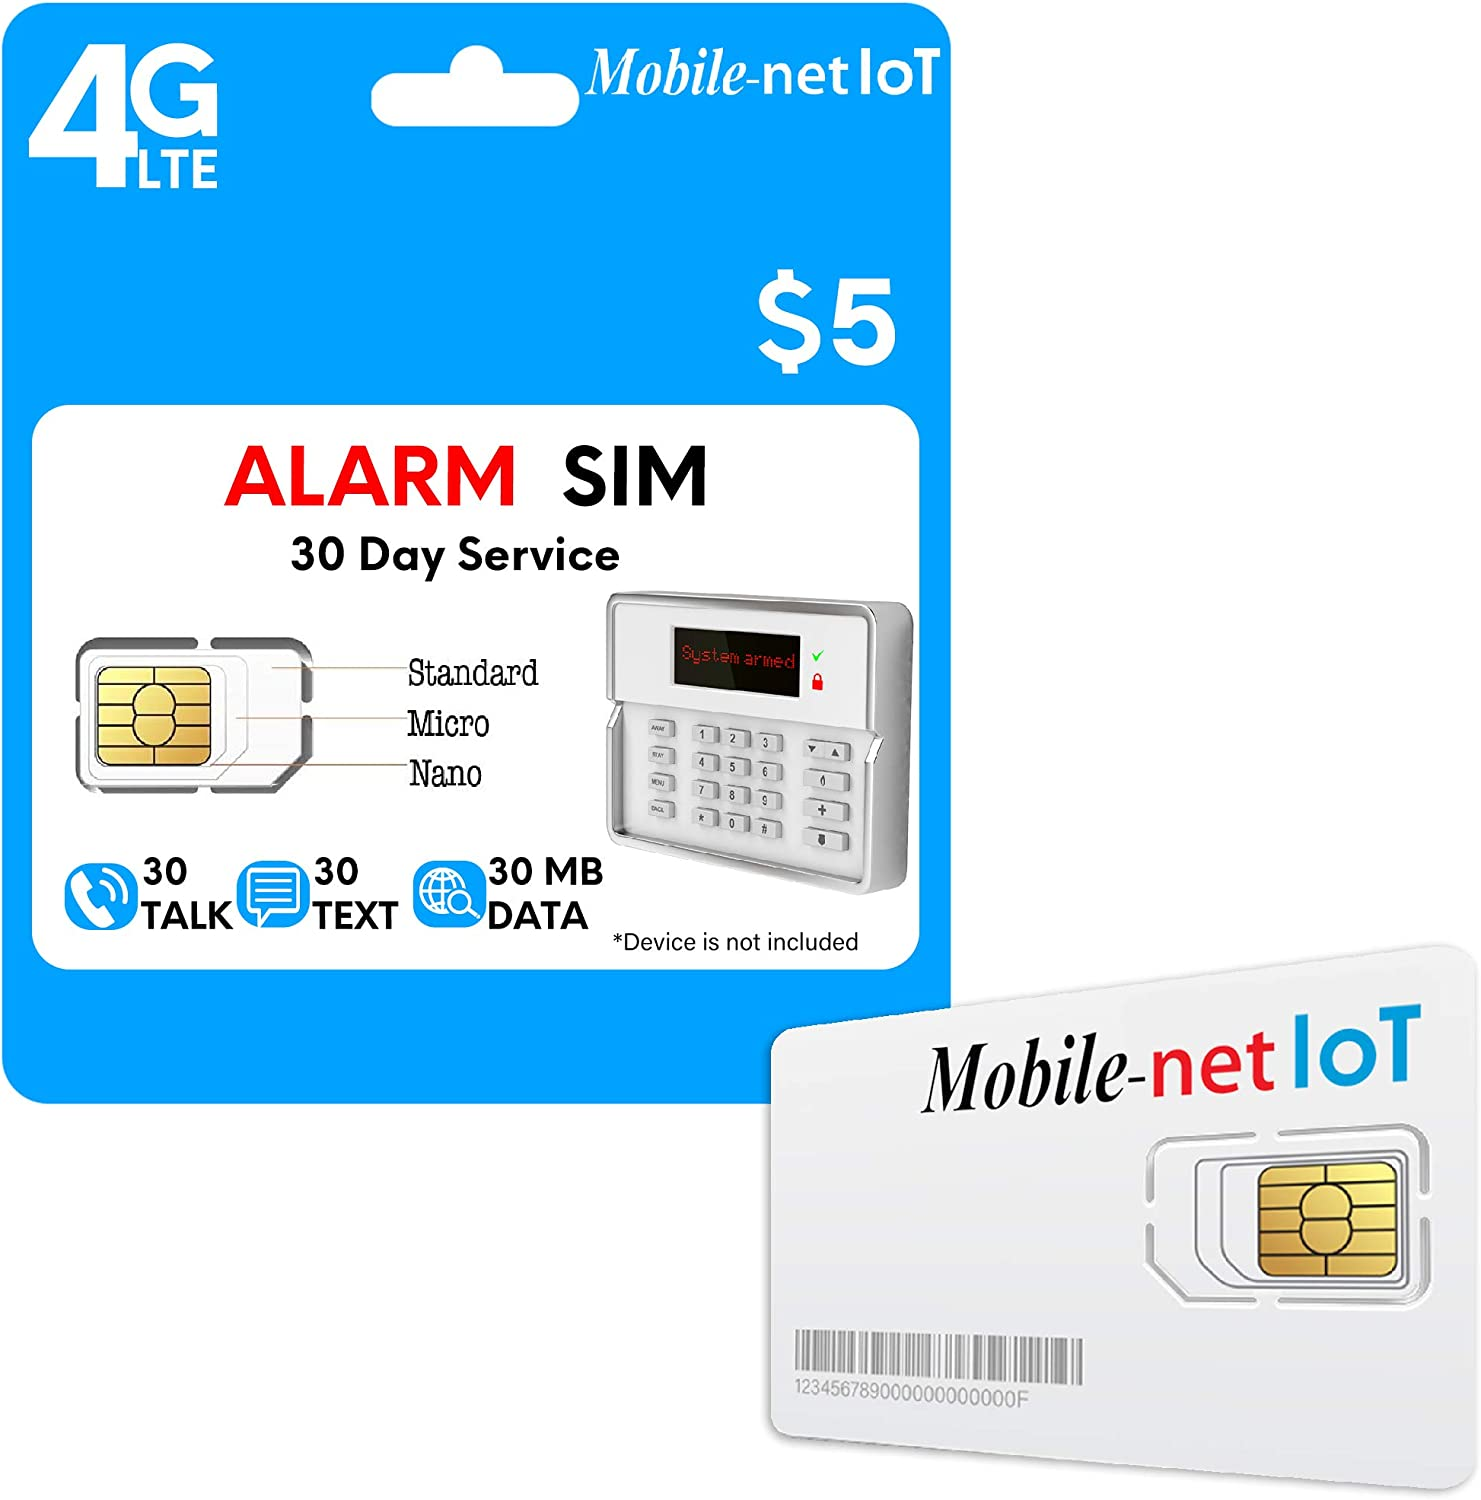 Mobile Net IoT $5 Nationwide AT&T 4G LTE Alarm SIM Card for GSM Business/Office/Home Security Burglar Anti-theft Alarm System & Monitoring